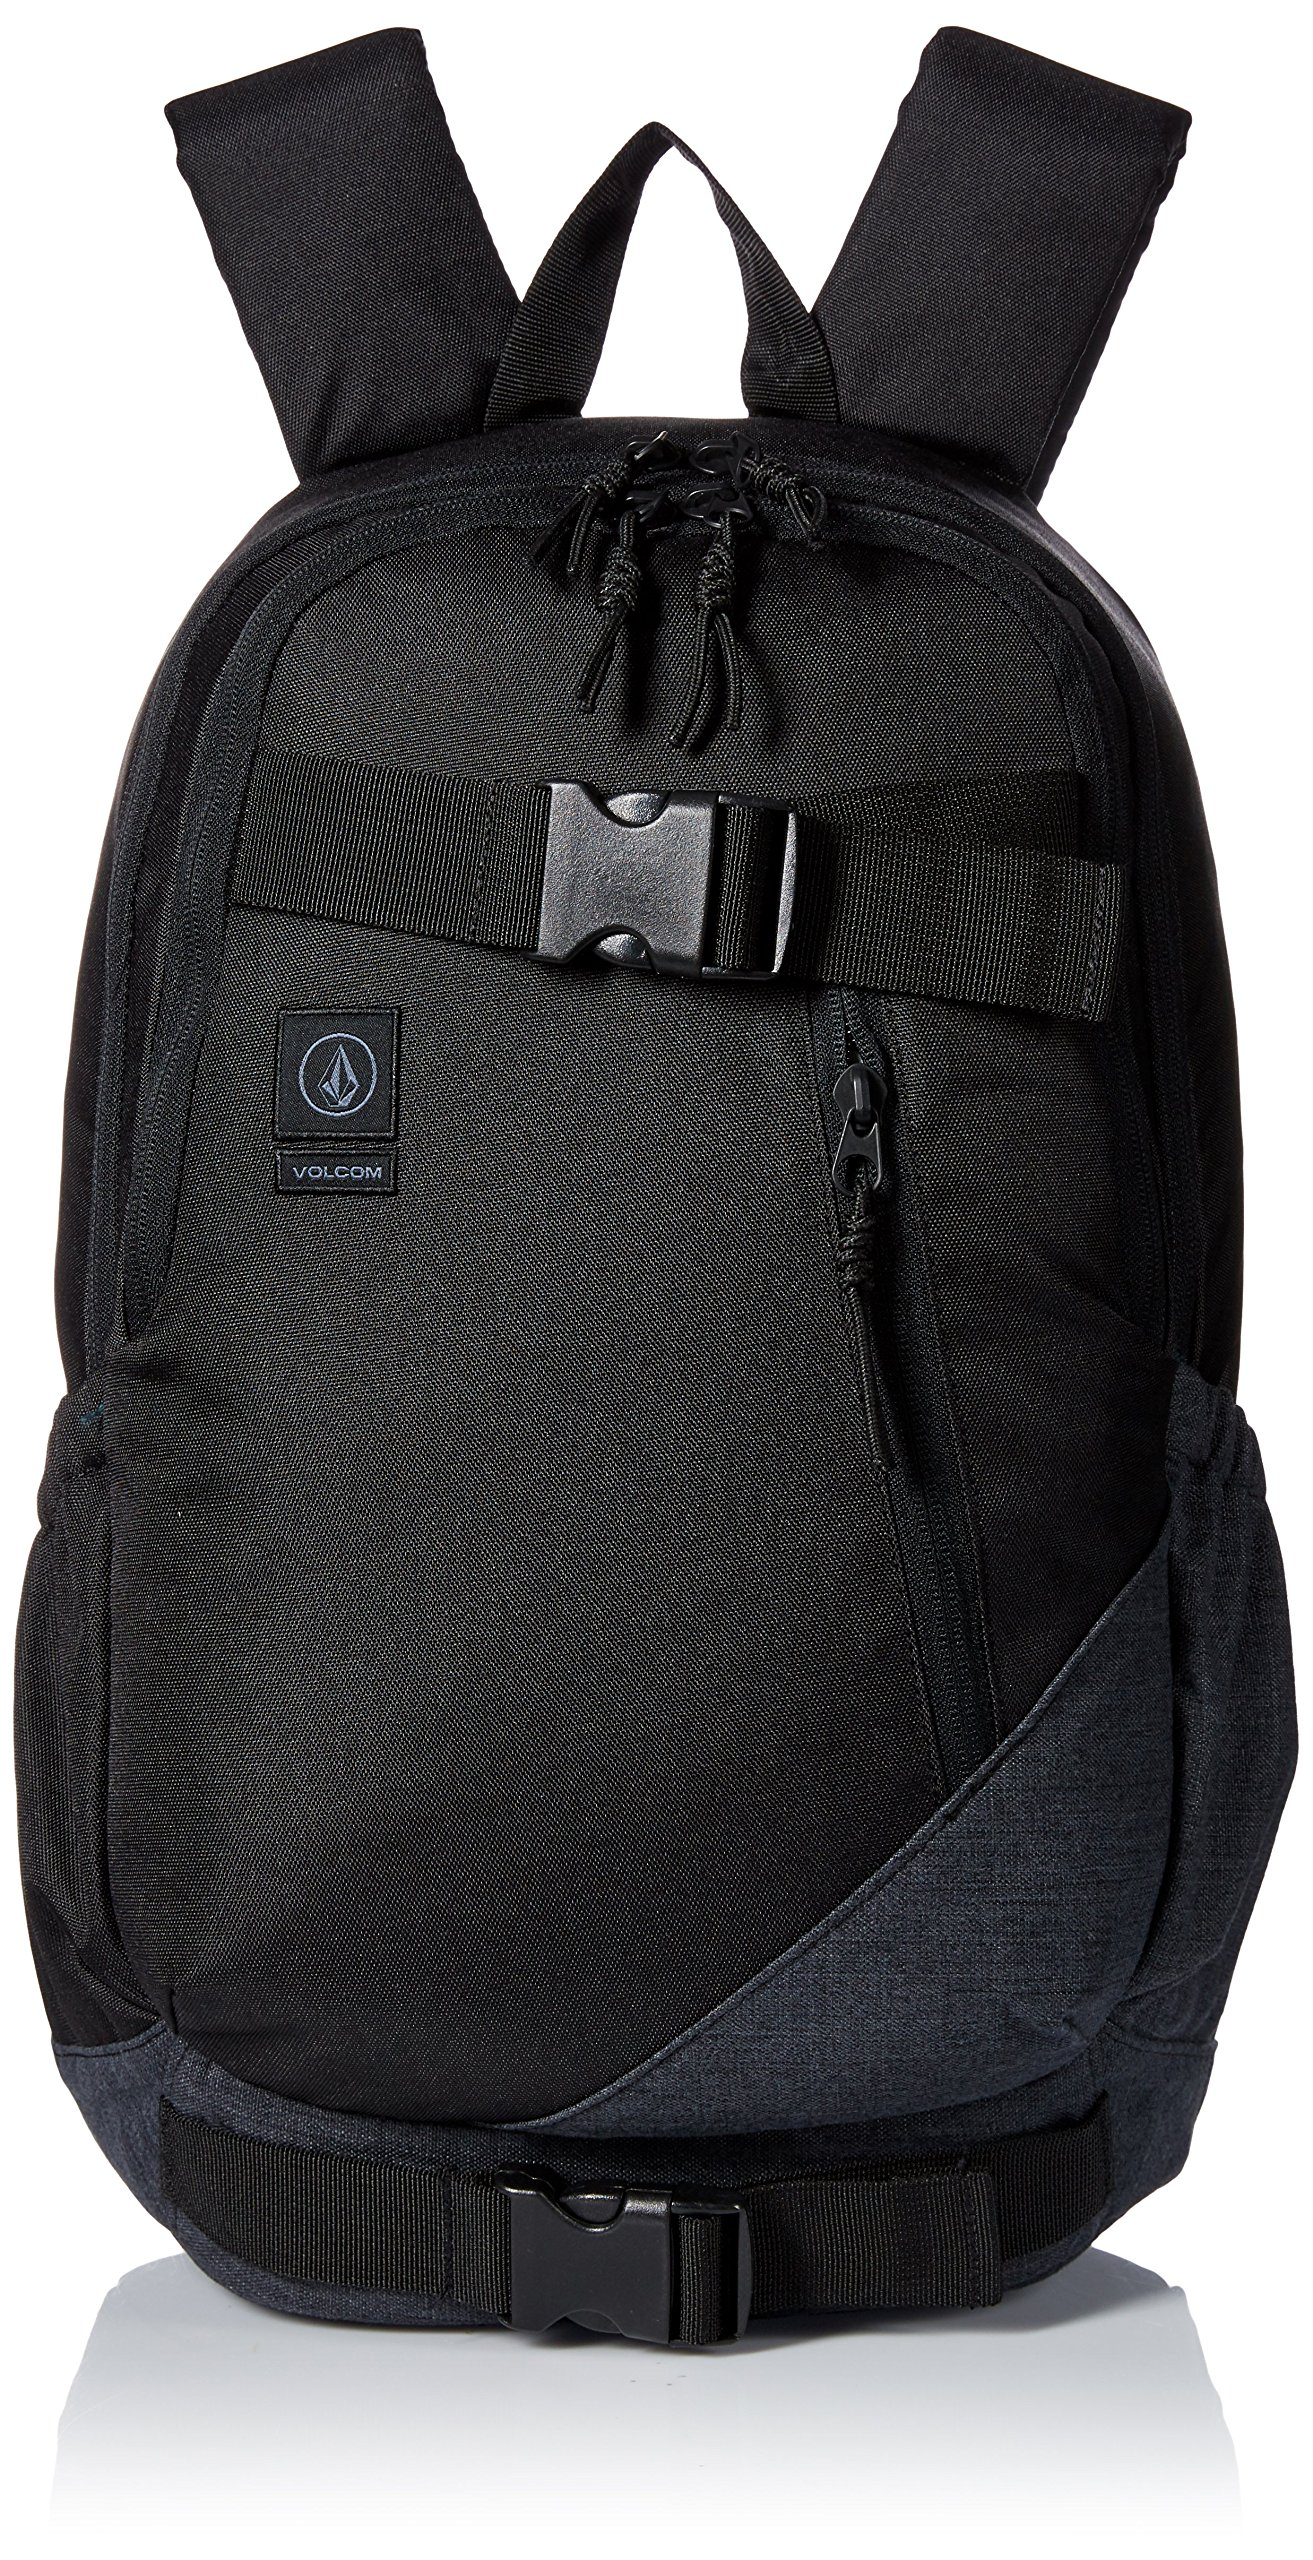 Volcom Unisex Substrate Backpack, Black, One Size